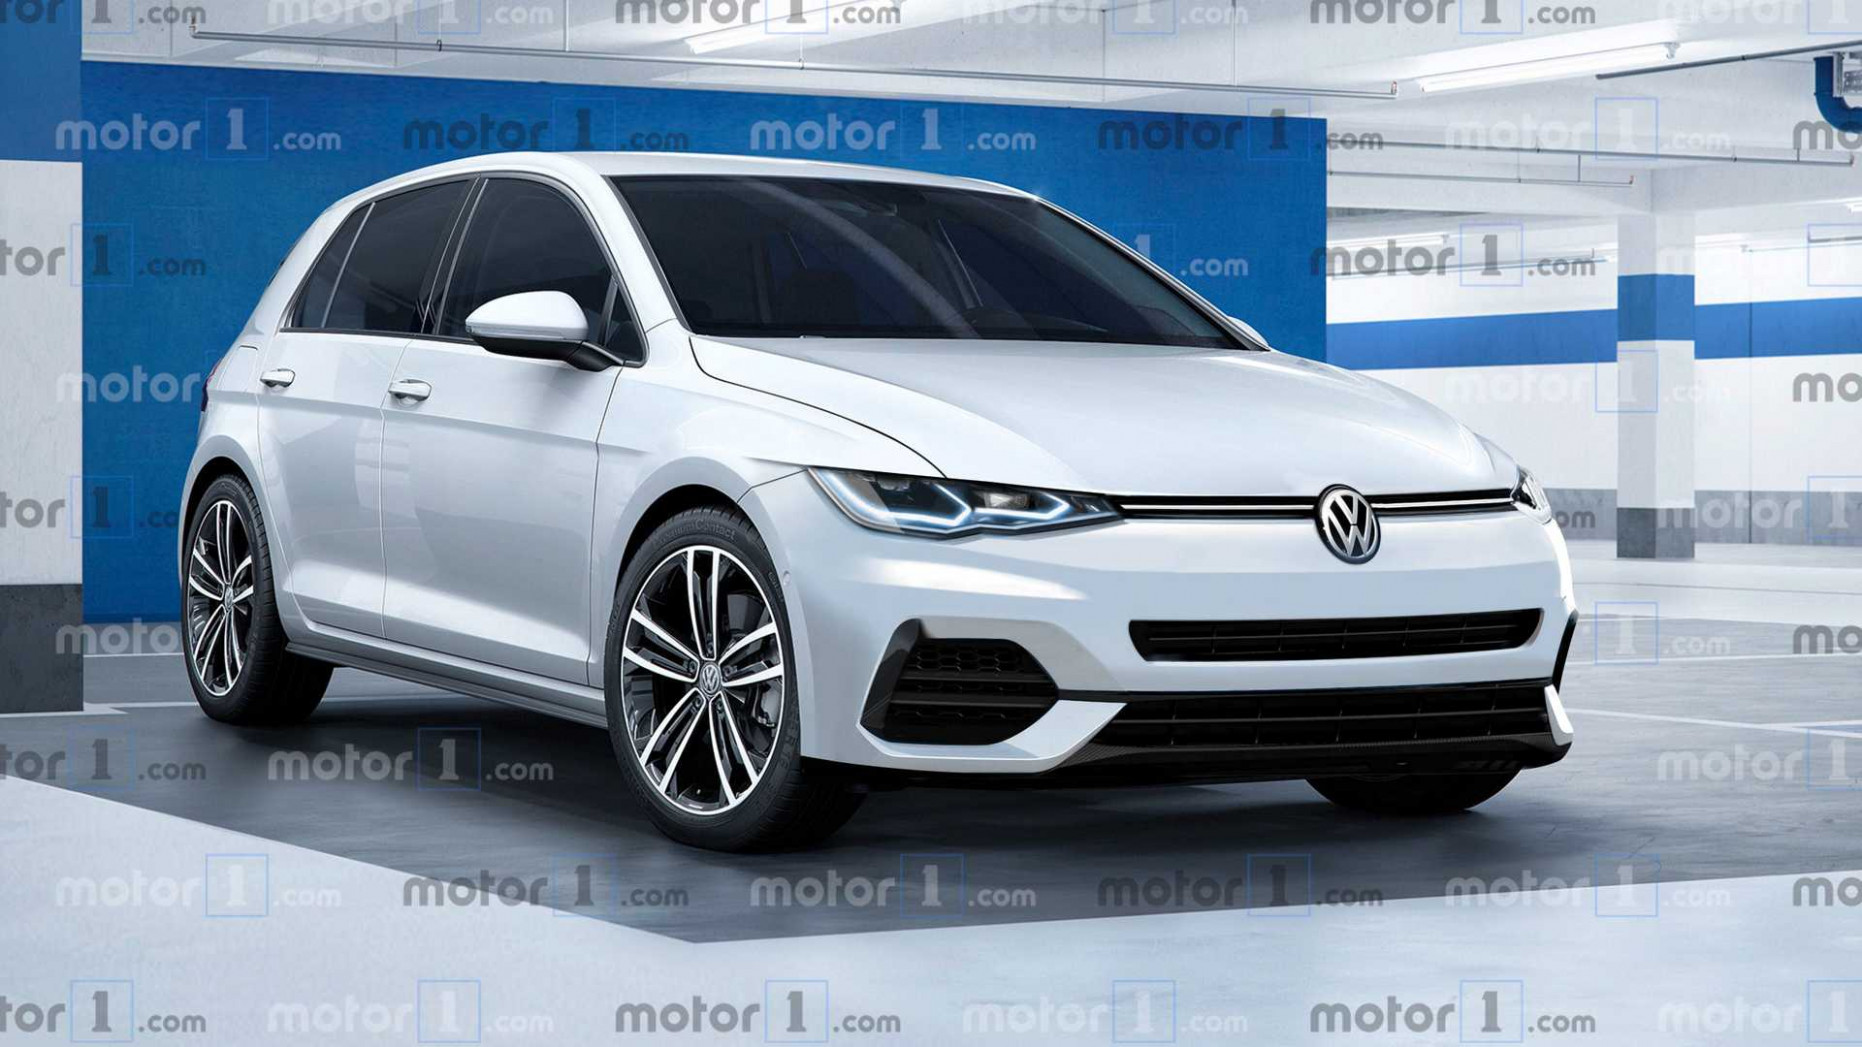 12 VW Golf 12 Officially Confirmed For October 12 Reveal